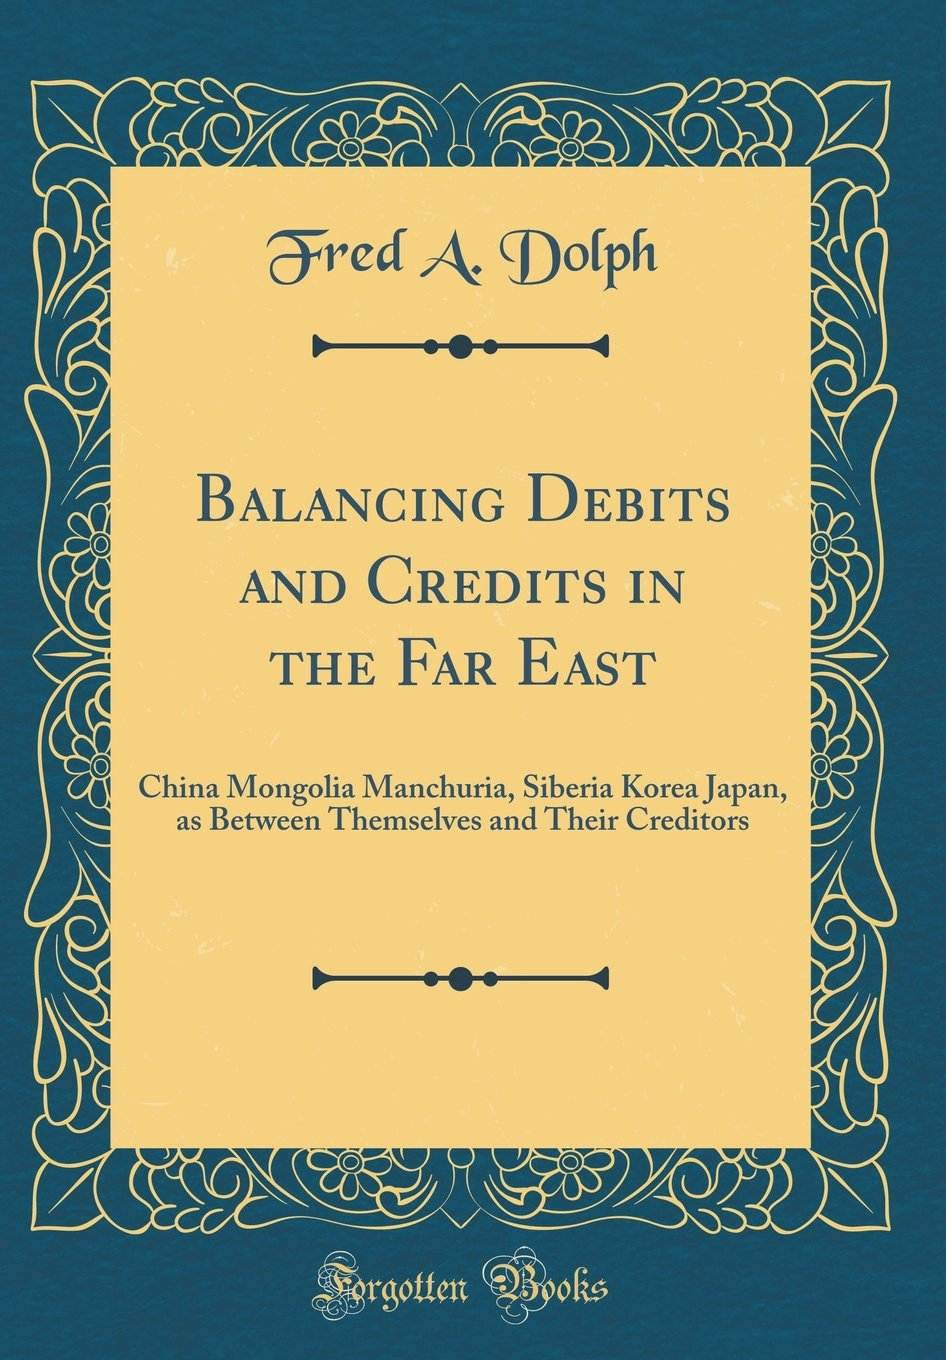 Read Online Balancing Debits and Credits in the Far East: China Mongolia Manchuria, Siberia Korea Japan, as Between Themselves and Their Creditors (Classic Reprint) PDF